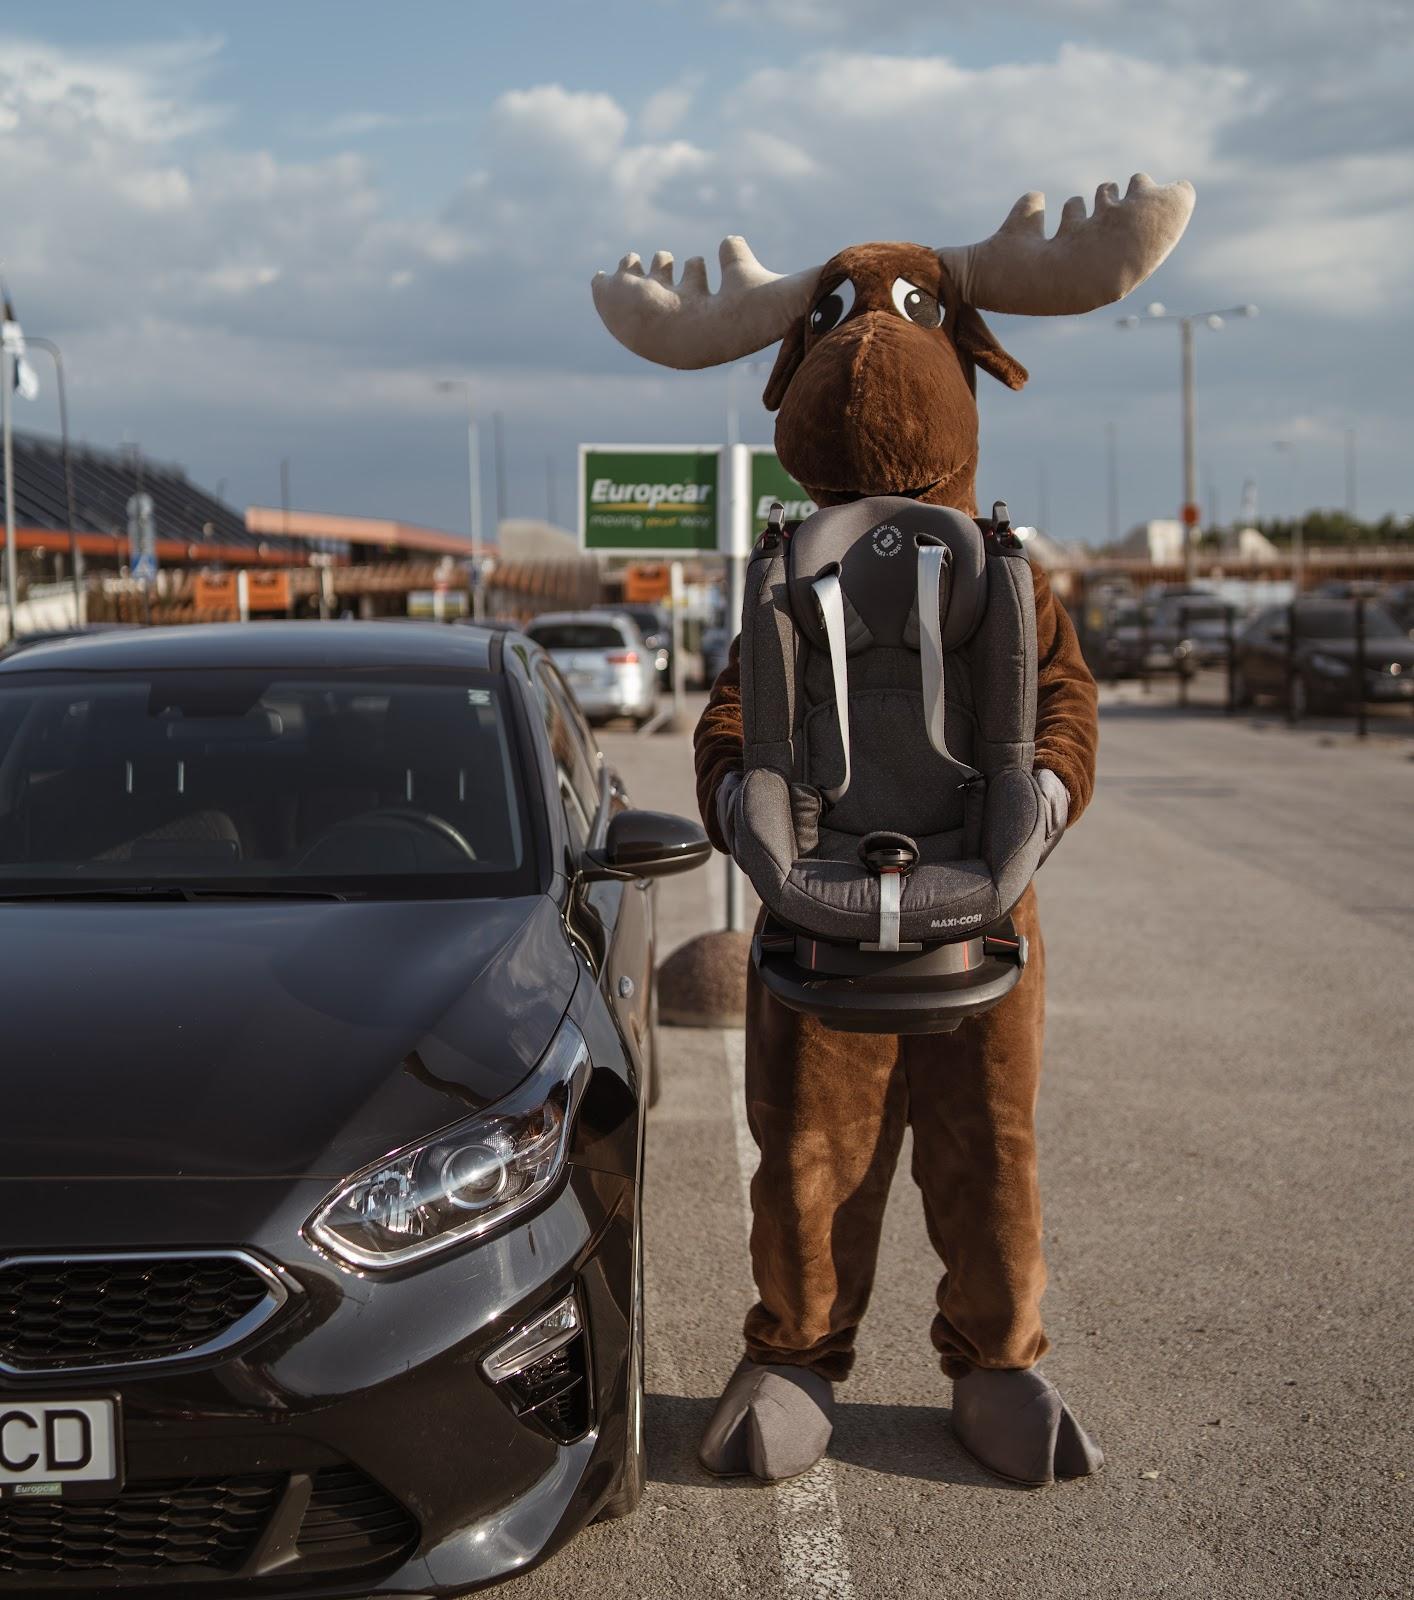 Rental Moose mascot holding child seat, a piece of additional equipment when renting a car, next to Kia Europcar rental car. Rental Moose is a global car rental broker which will help you get the best deal on your next rental car.